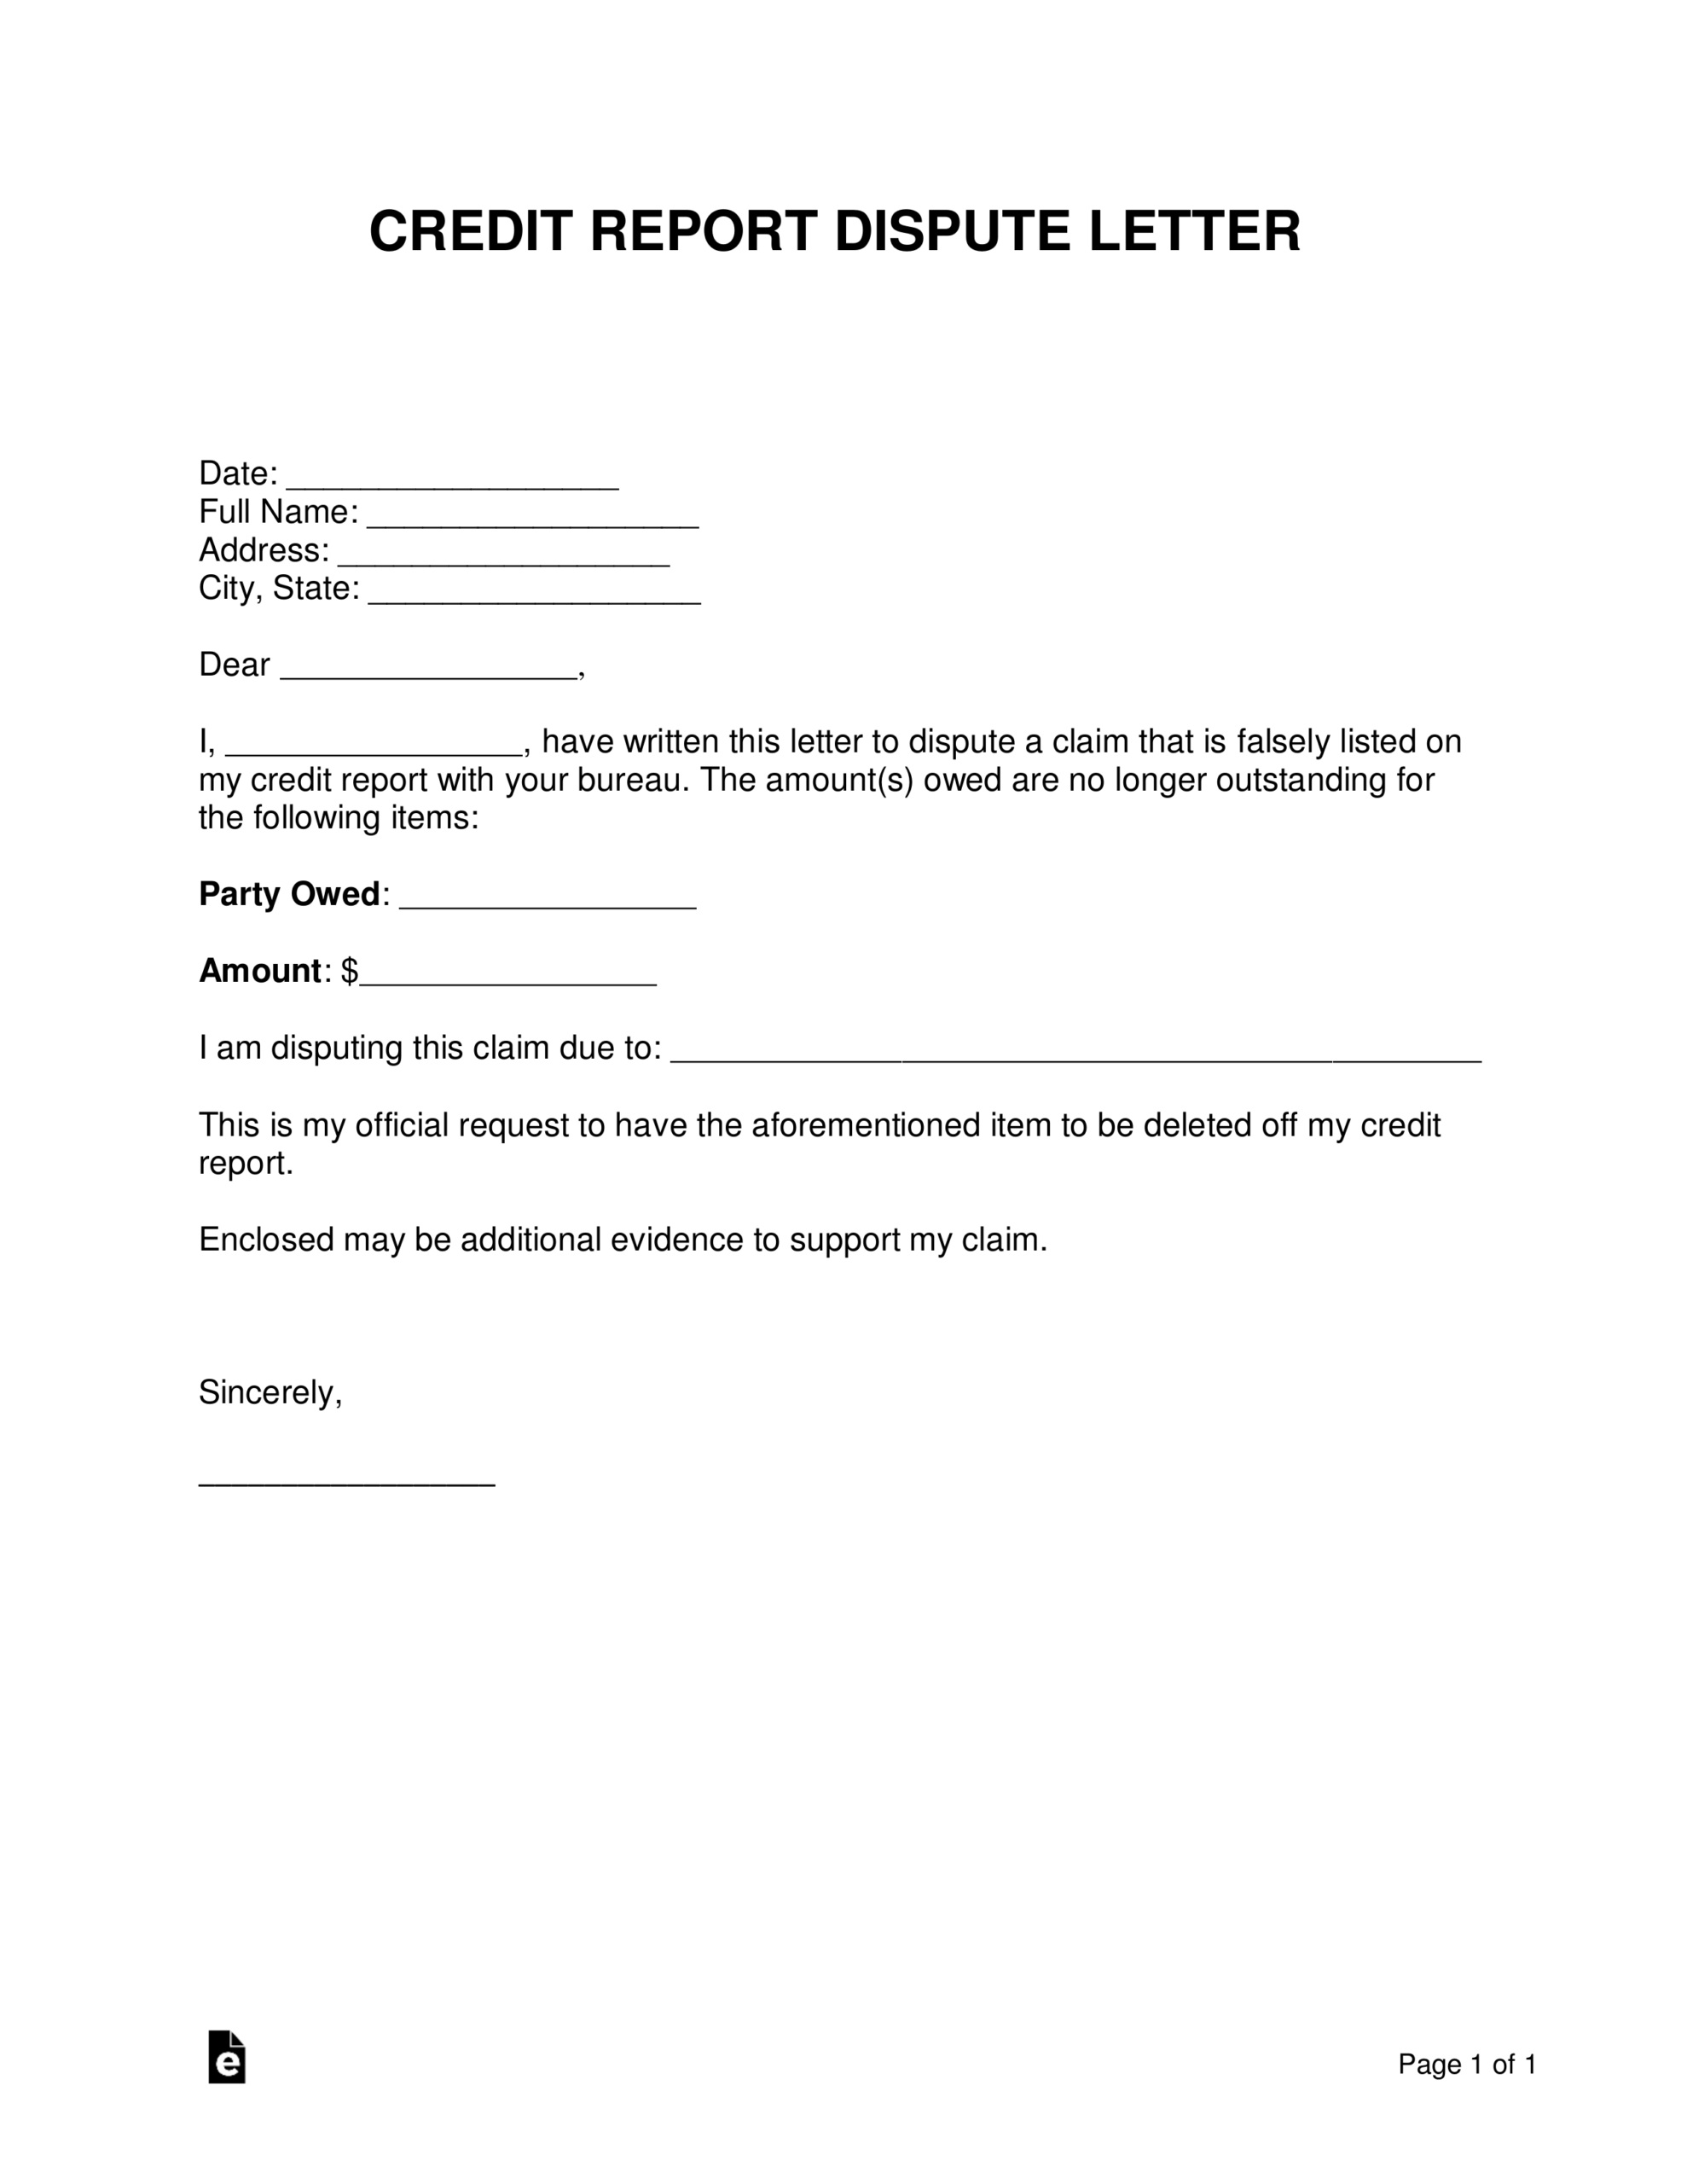 Credit Dispute Letter - Calep.midnightpig.co Intended For Credit Report Dispute Letter Template